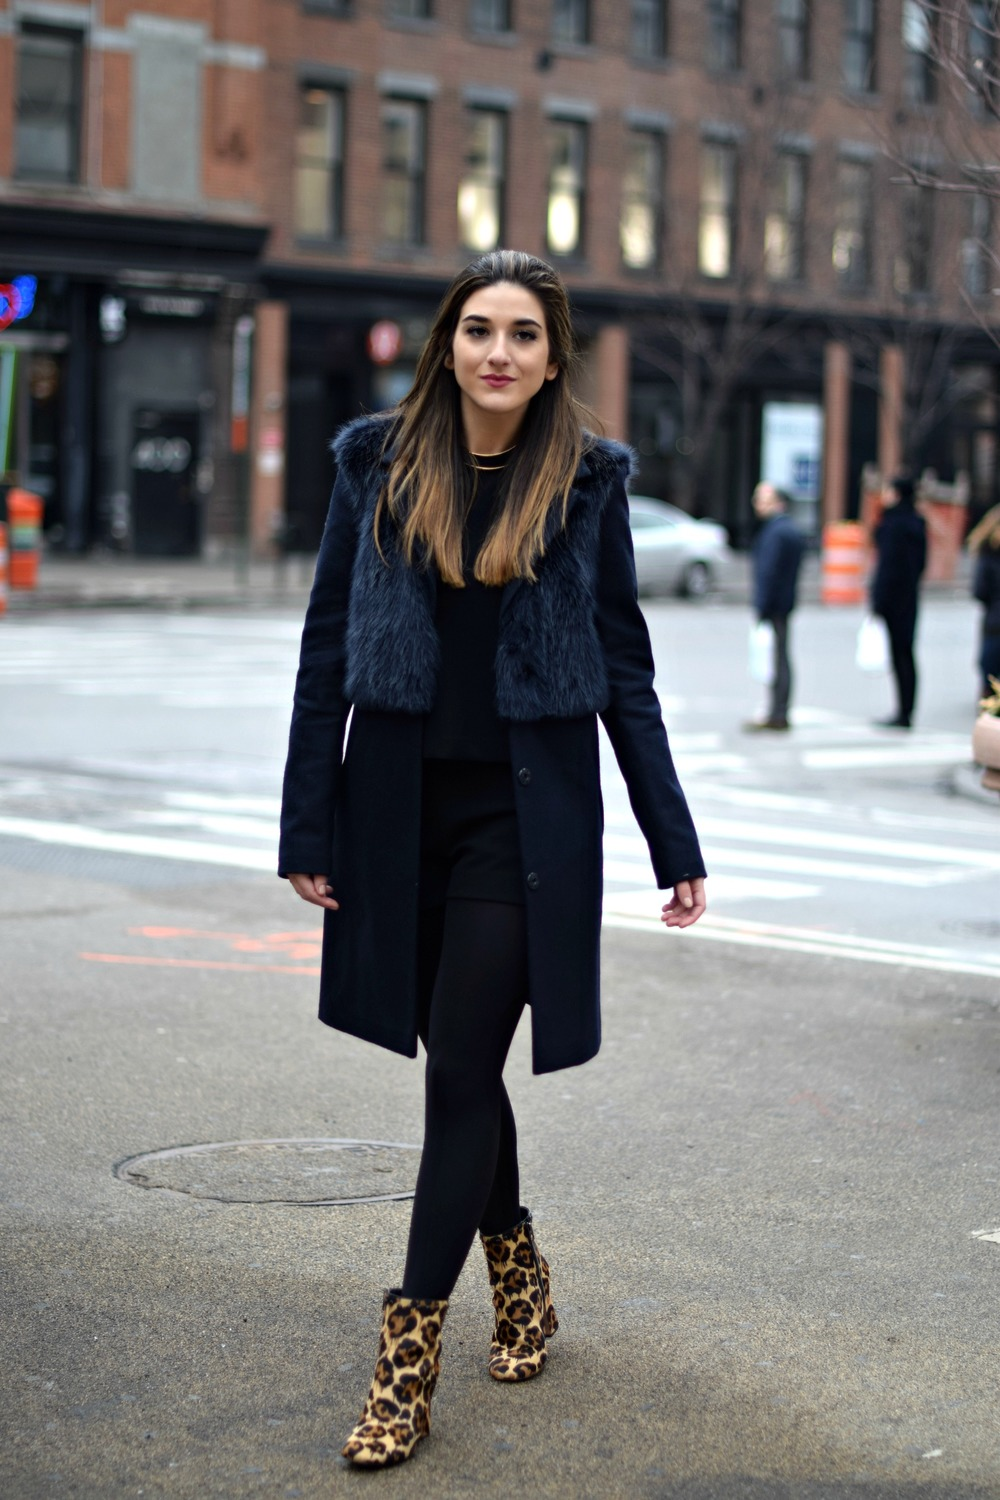 Navy Coat Coach Leopard Booties Louboutins & Love Fashion Blog Esther Santer NYC Street Style Blogger Outfit OOTD Fur Topshop Shopping Girl Women Swag Photoshoot Model Beautiful Winter Inspo NYFW Shoes Tights Ivanka Trump Soho Tote City Hair Lifestyle.jpg